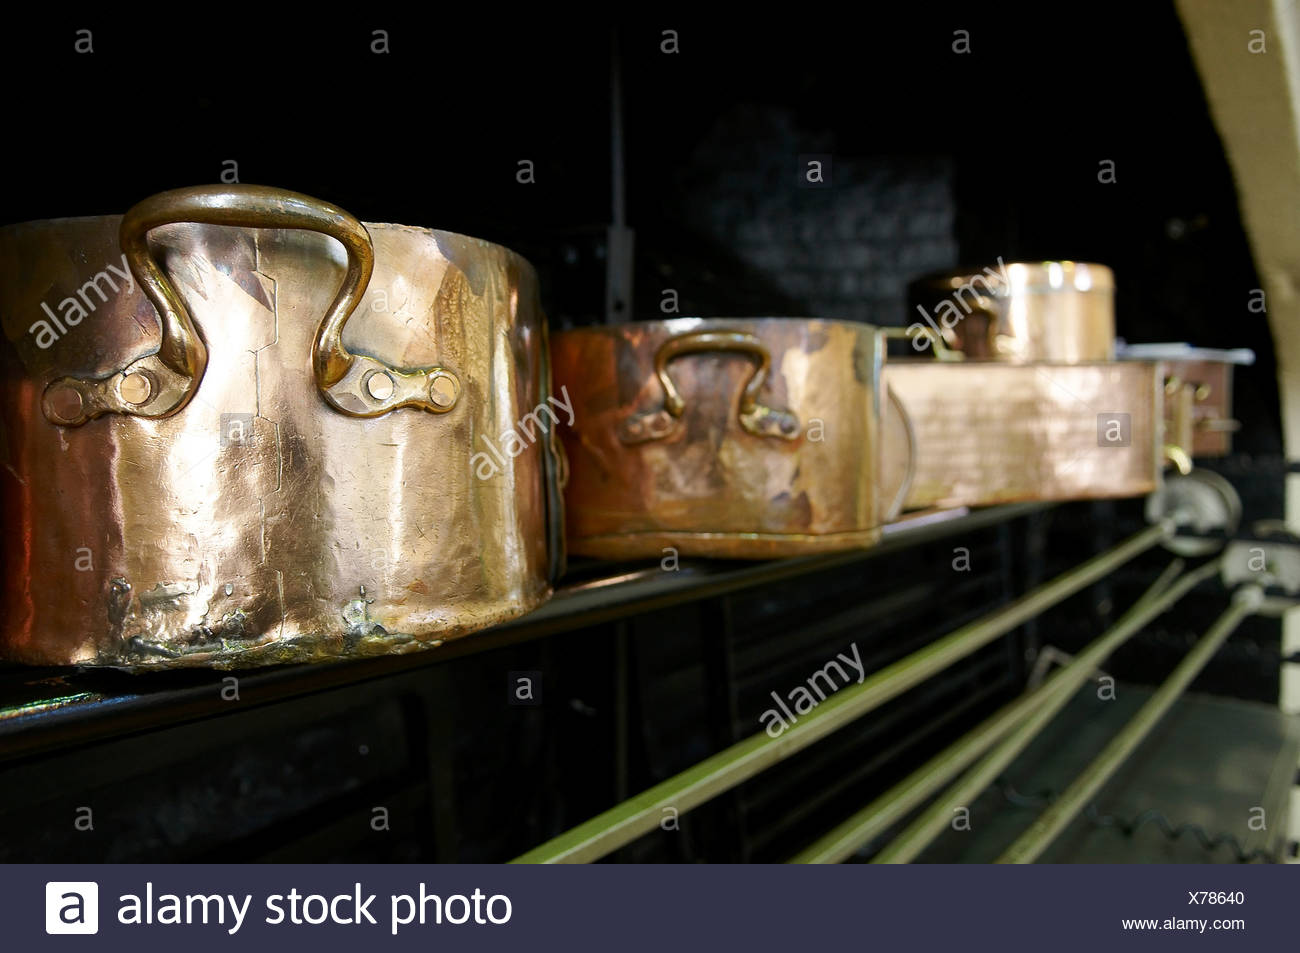 Traditional copper pots and pans in a restaurant kitchen - Stock Image